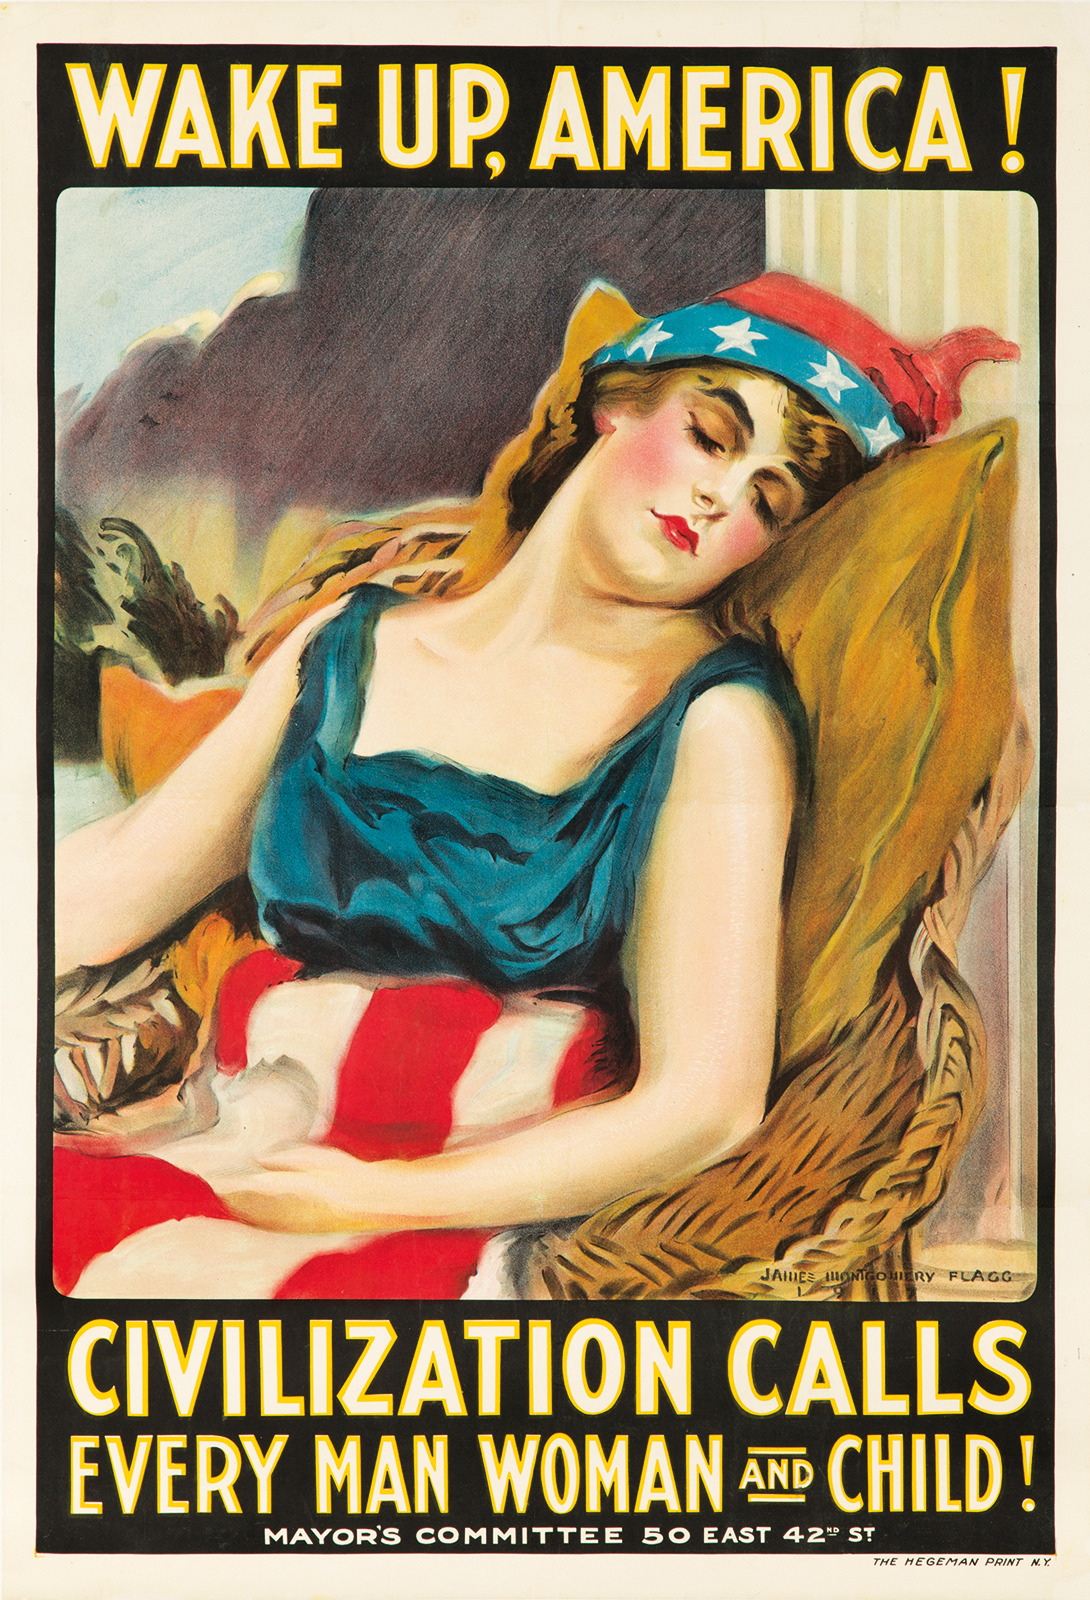 'Wake Up, America!' - James Montgomery Flagg - 1917